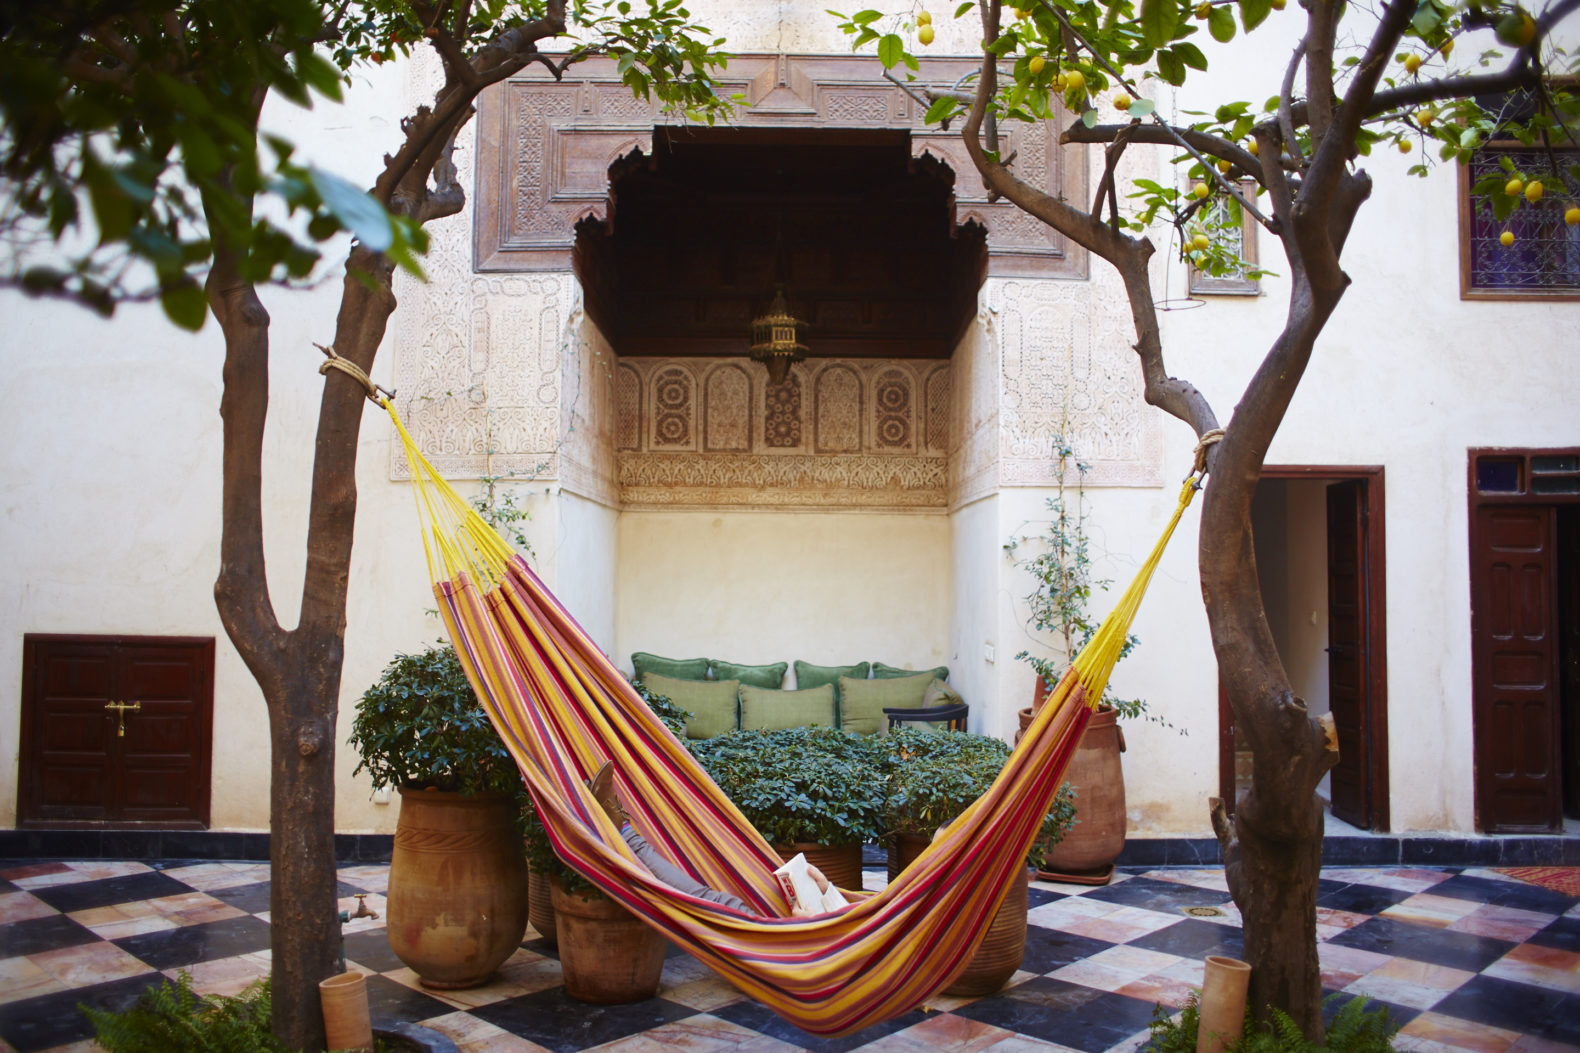 hammock-relax-reading-area-outside-trees-el-fenn-morocco-marrakesh